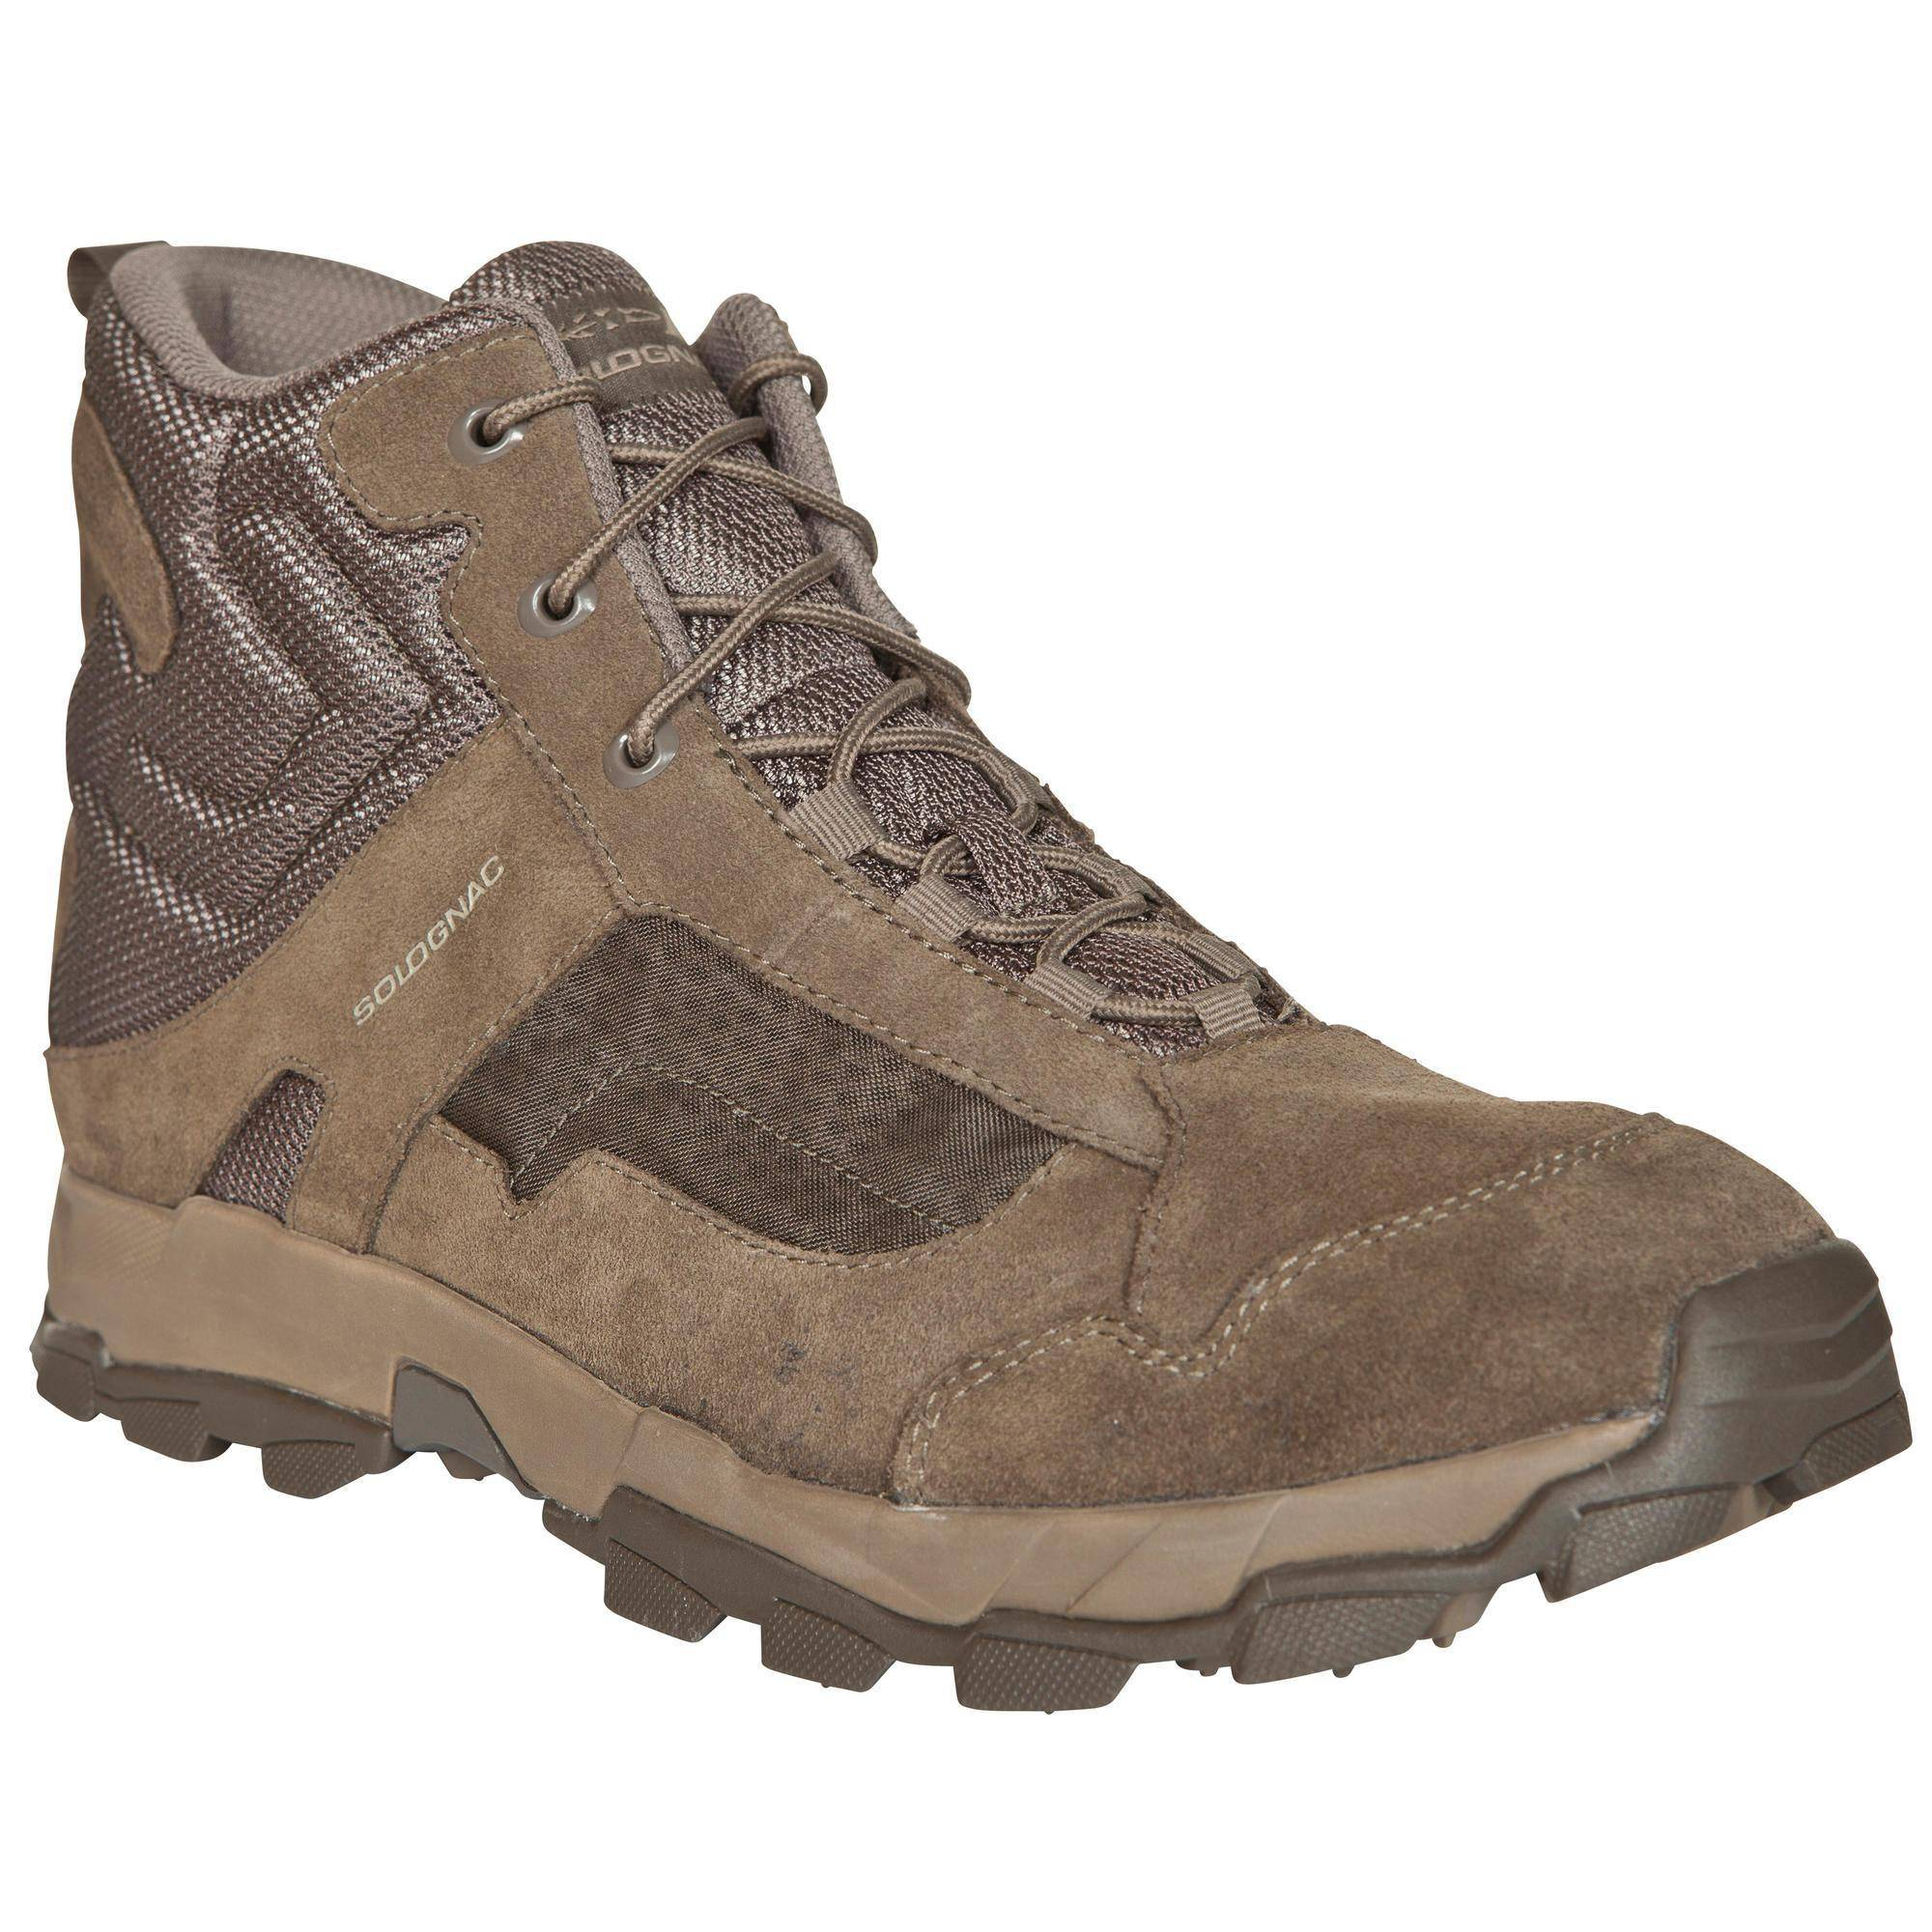 Solognac Chaussures Chasse Sporthunt 300 beige - Solognac